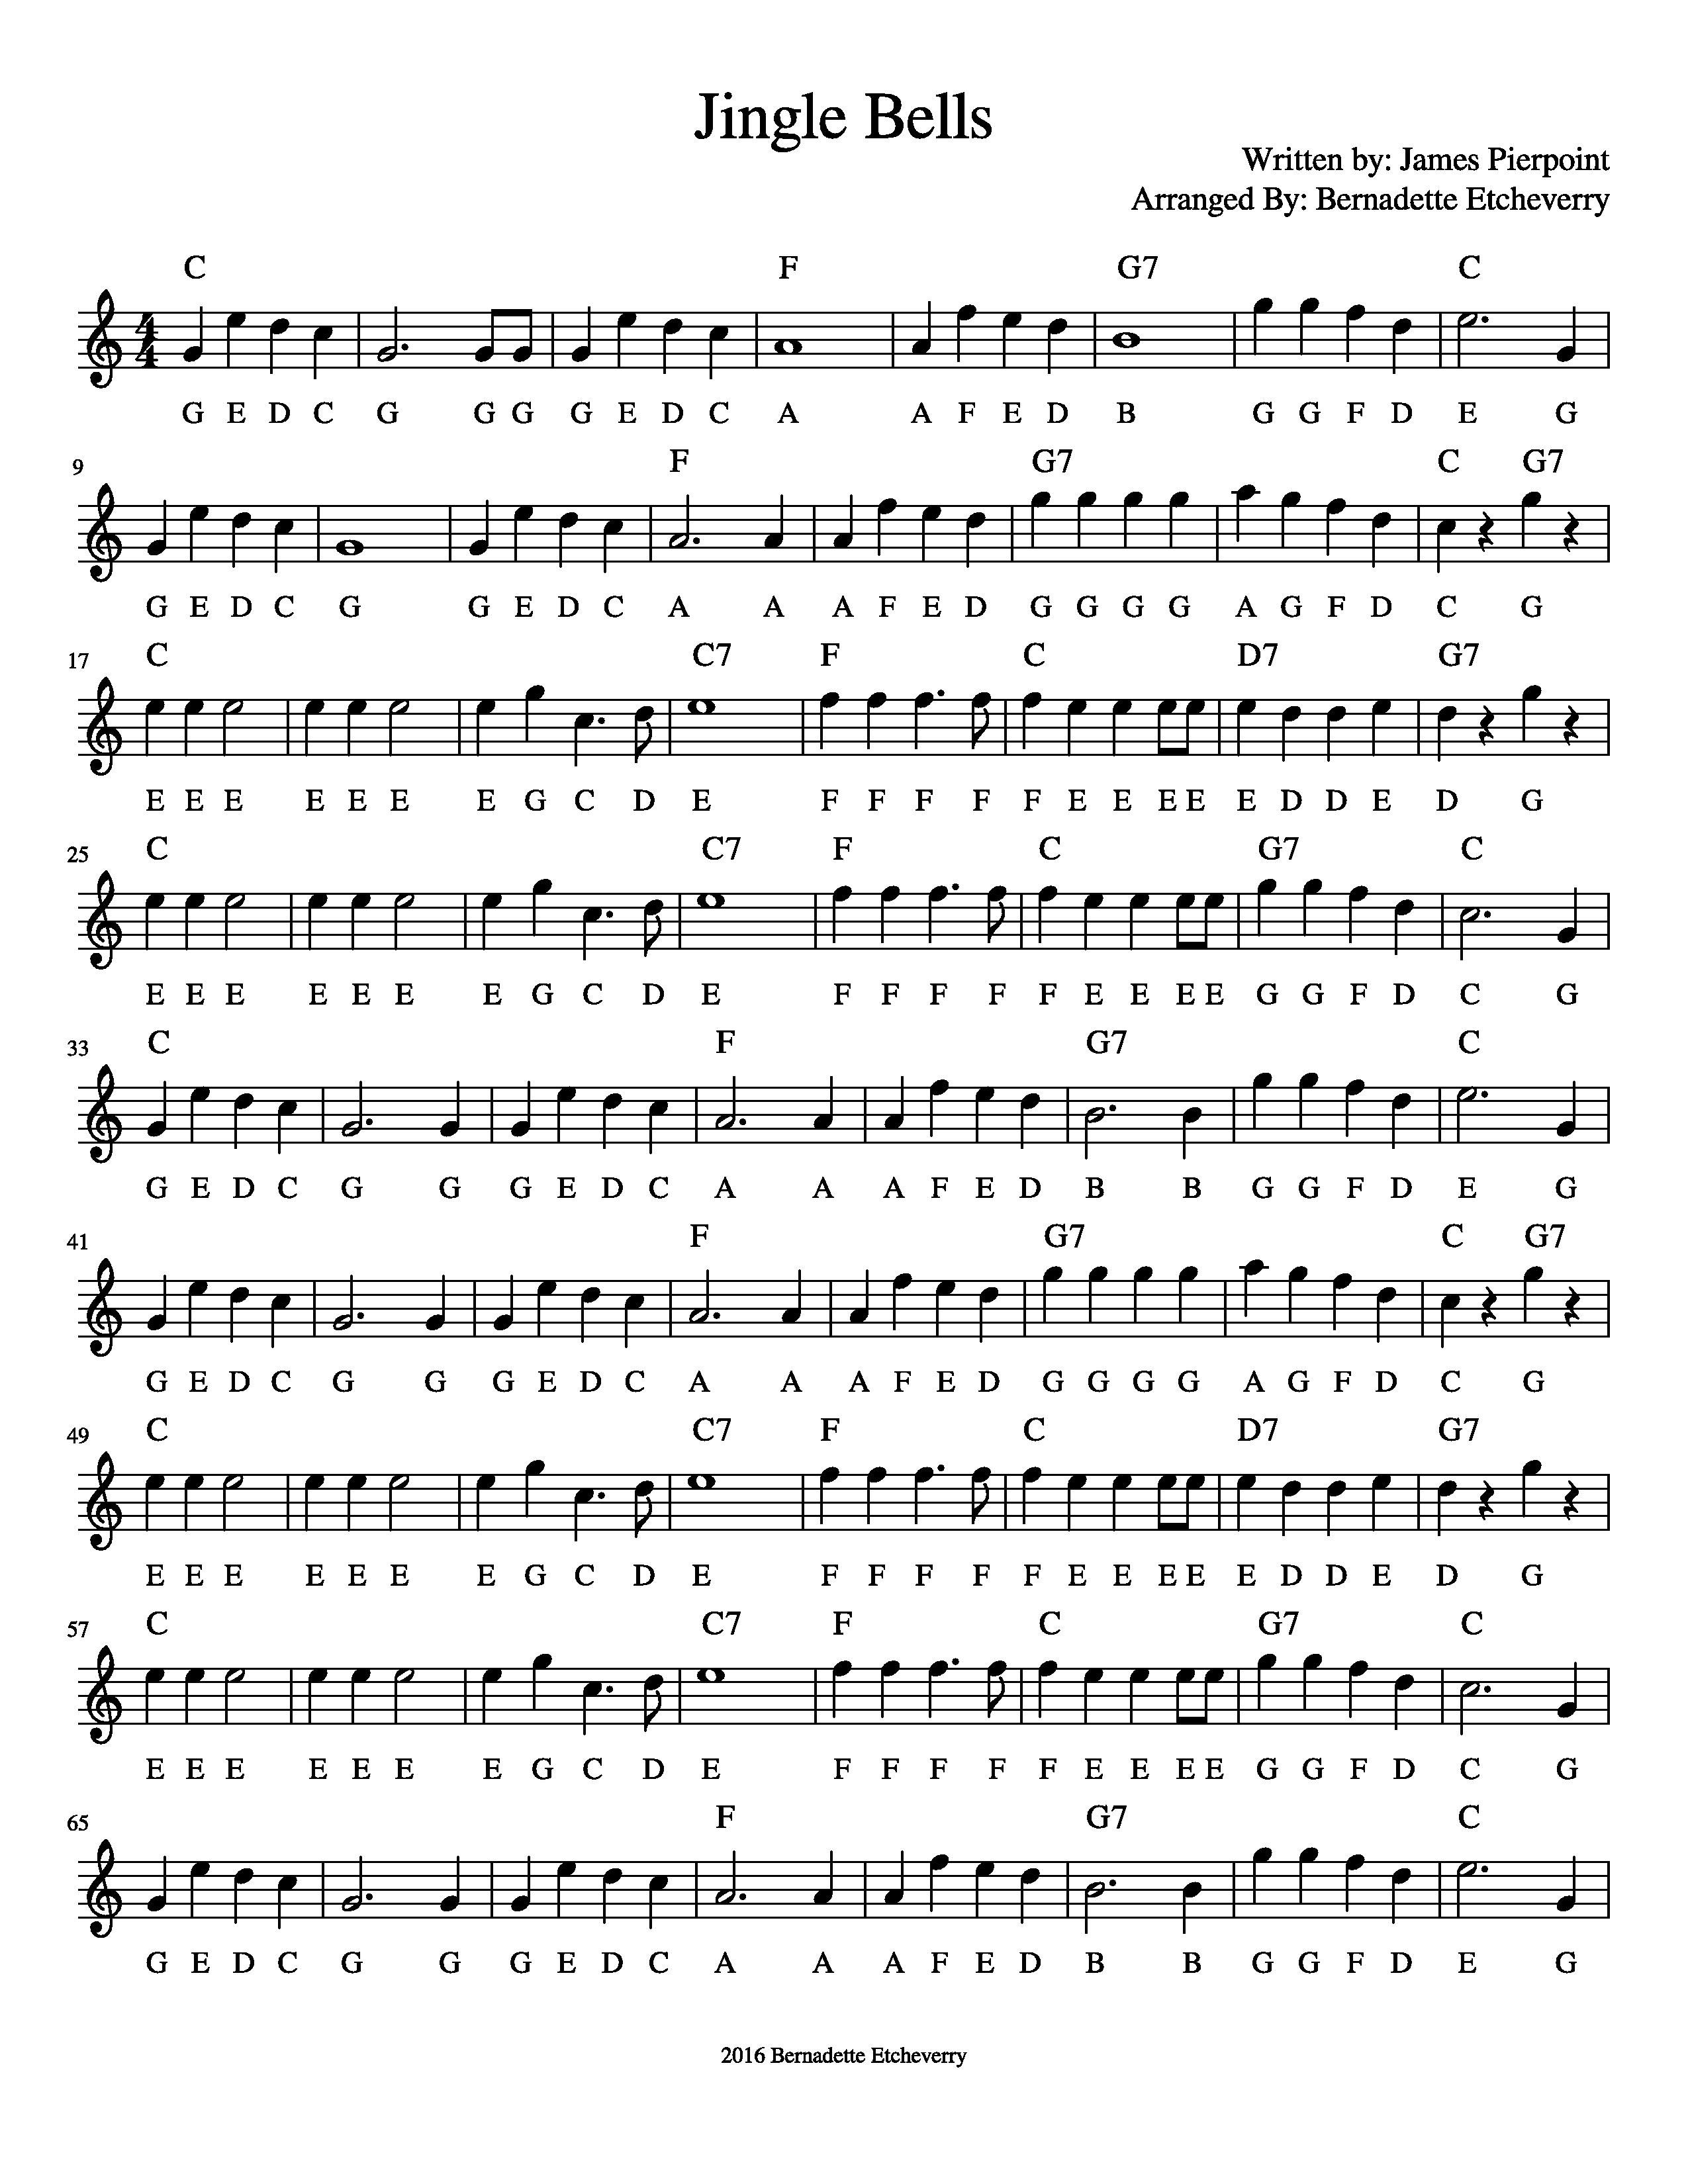 Free Sheet Music Jingle Bells for Pitched Percussion Ukulele & Guitar tab